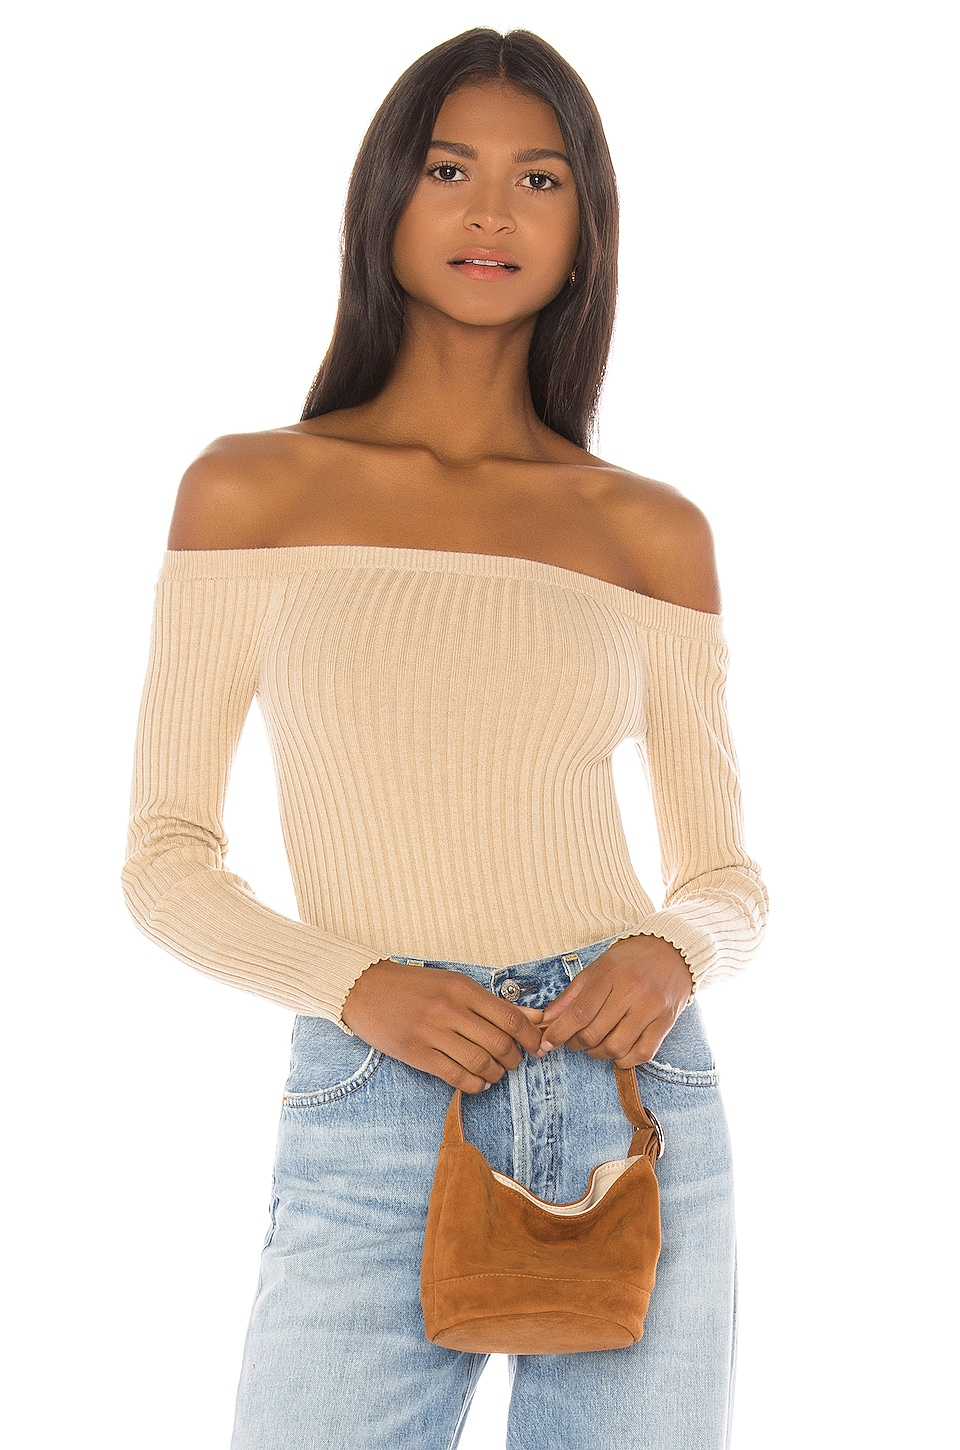 House of Harlow 1960 X REVOLVE Dove Rib Sweater in Beige